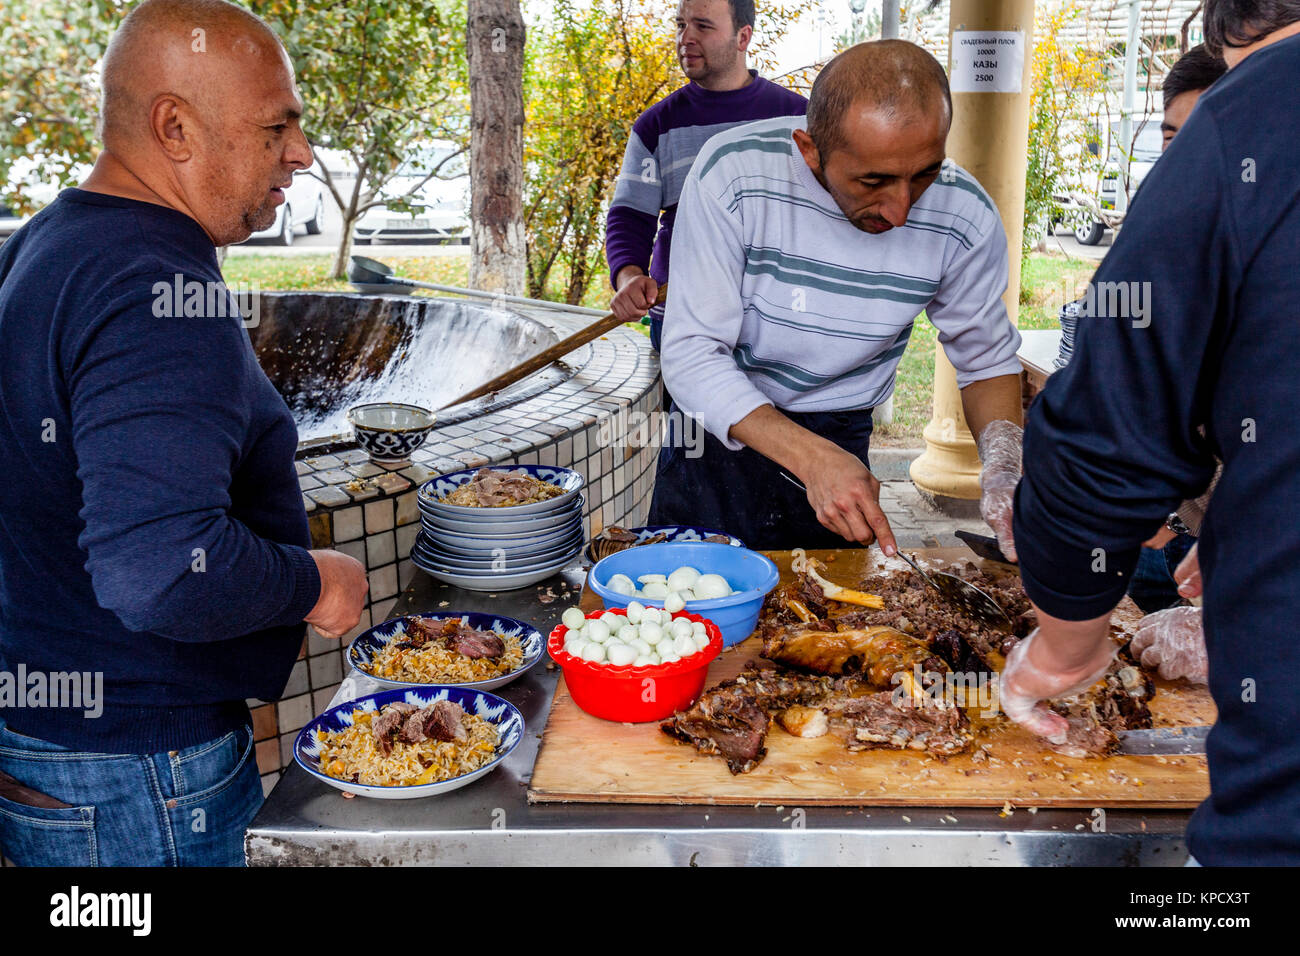 Men Cooking and Serving PLOV (The National Dish) At The Central Asian Plov Centre, Tashkent, Uzbekistan - Stock Image